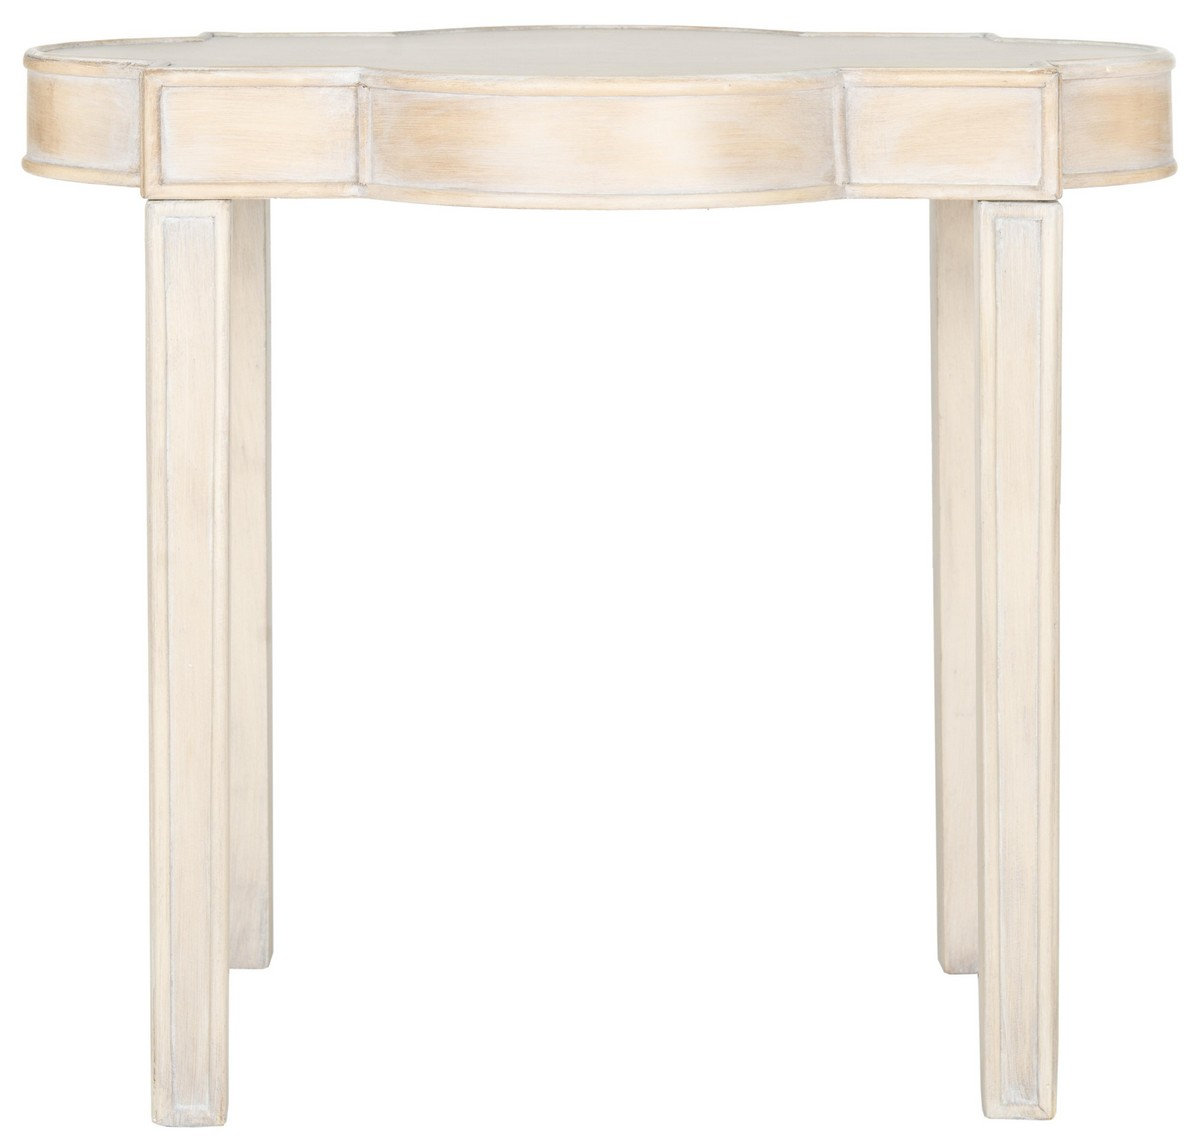 accent tables furniture safavieh front quatrefoil wood table share this product drum seat chairs patio umbrella hole insert small tall end door saddle oak mission kids and target